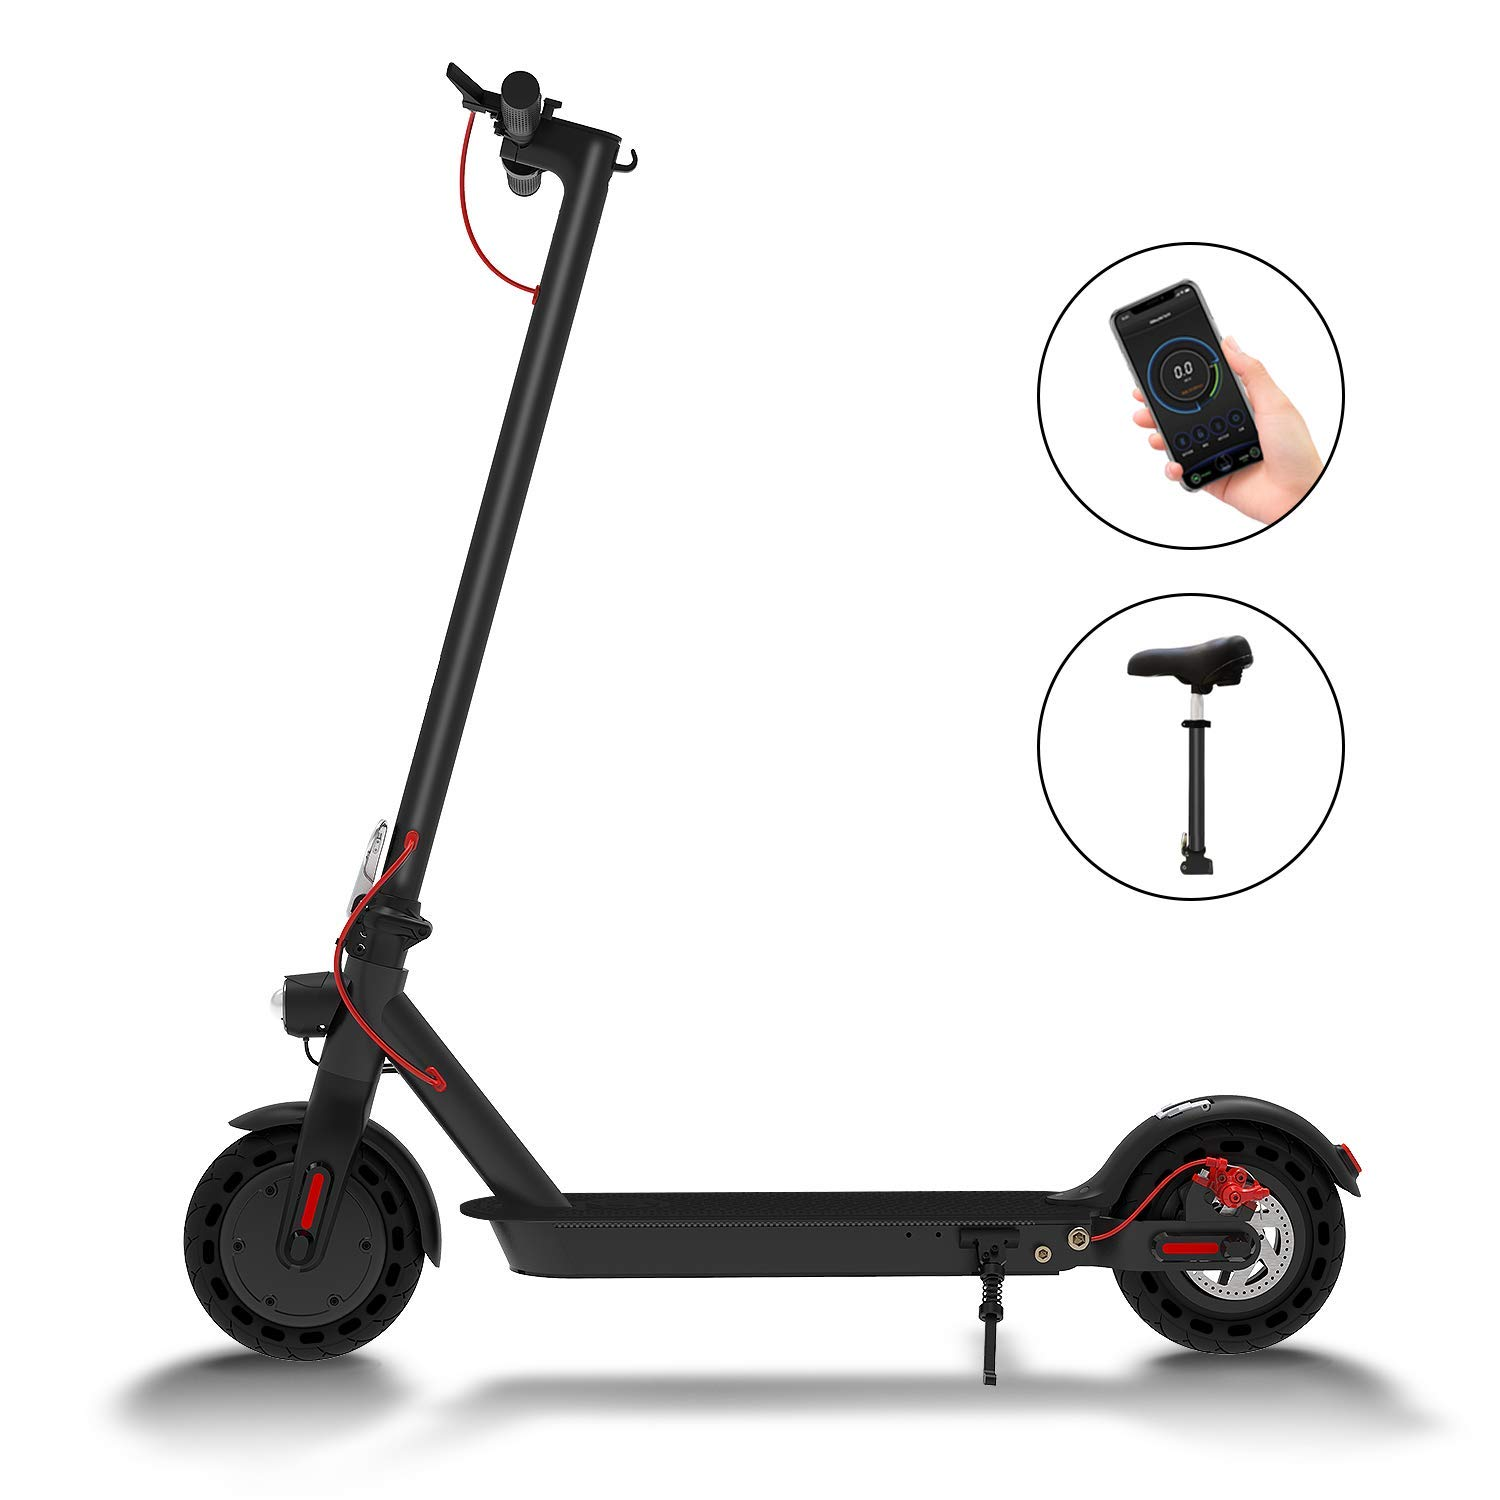 Hiboy S2 Electric Scooter - 8.5'' Solid Tires - Up to 17 Miles & 15.5 MPH Portable Folding Commuting Scooter for Adults with Double Braking System, Rear Suspension and App